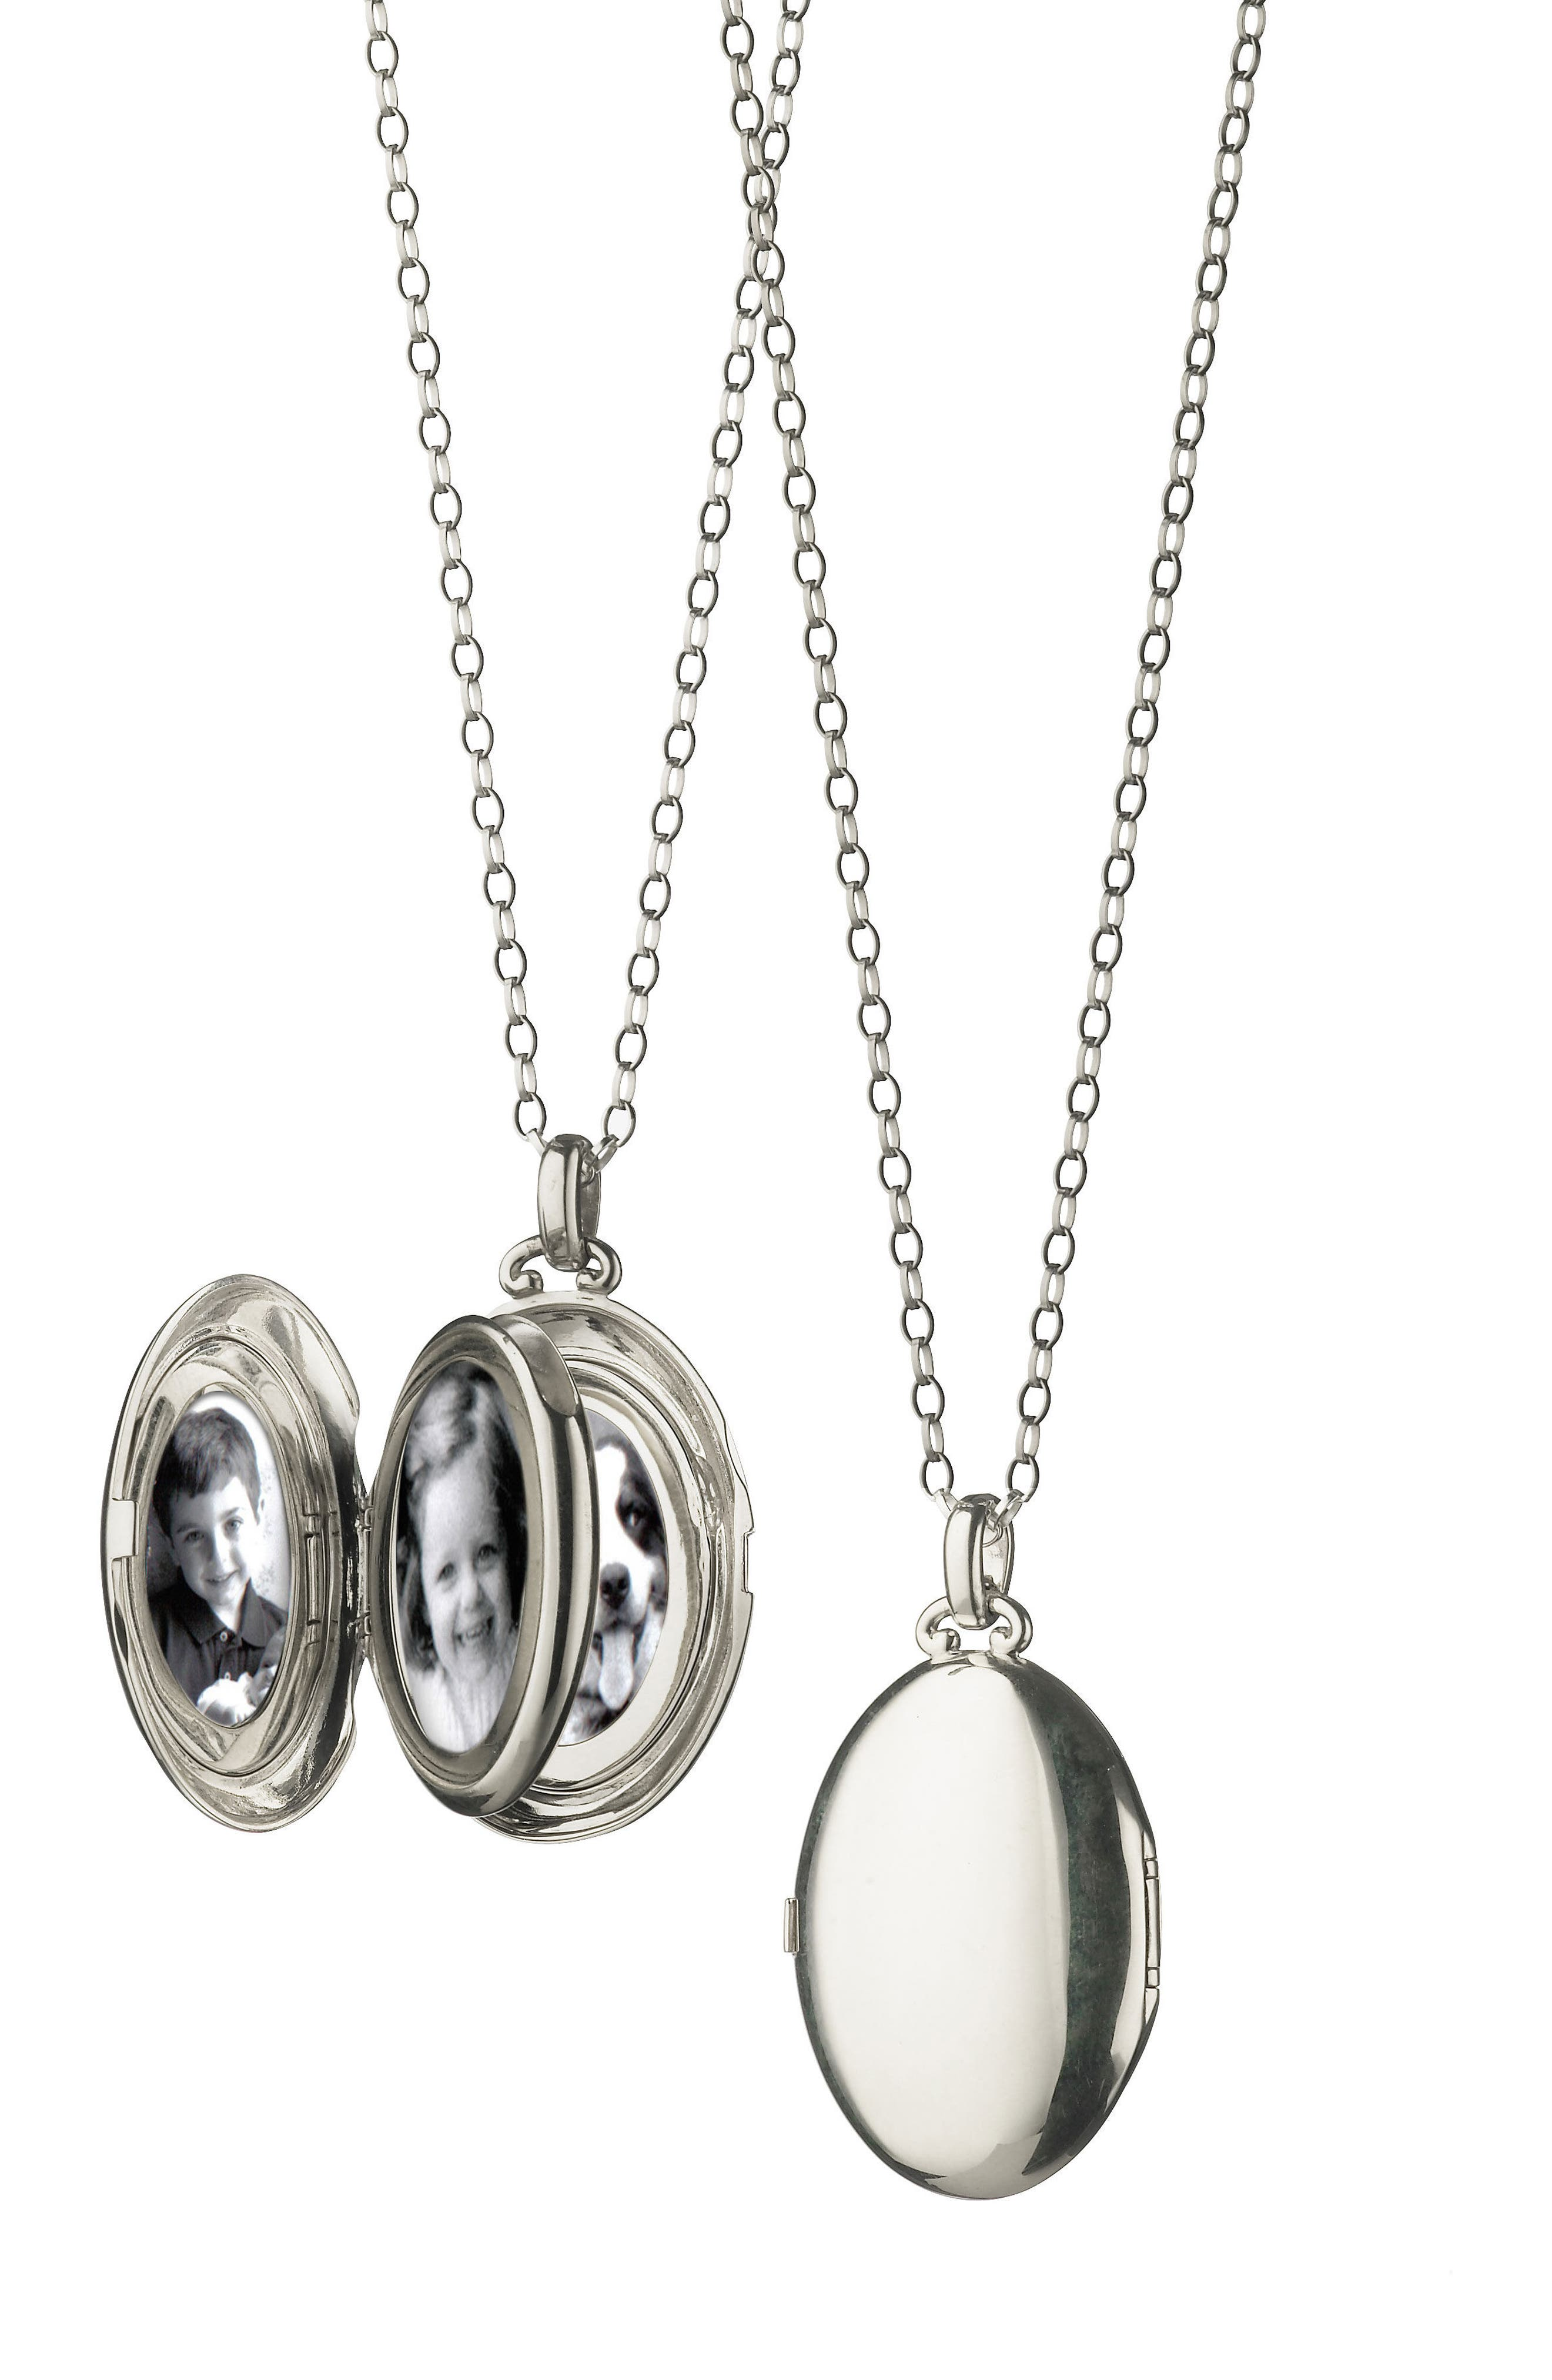 Four Image Oval Locket Necklace,                             Alternate thumbnail 4, color,                             STERLING SILVER